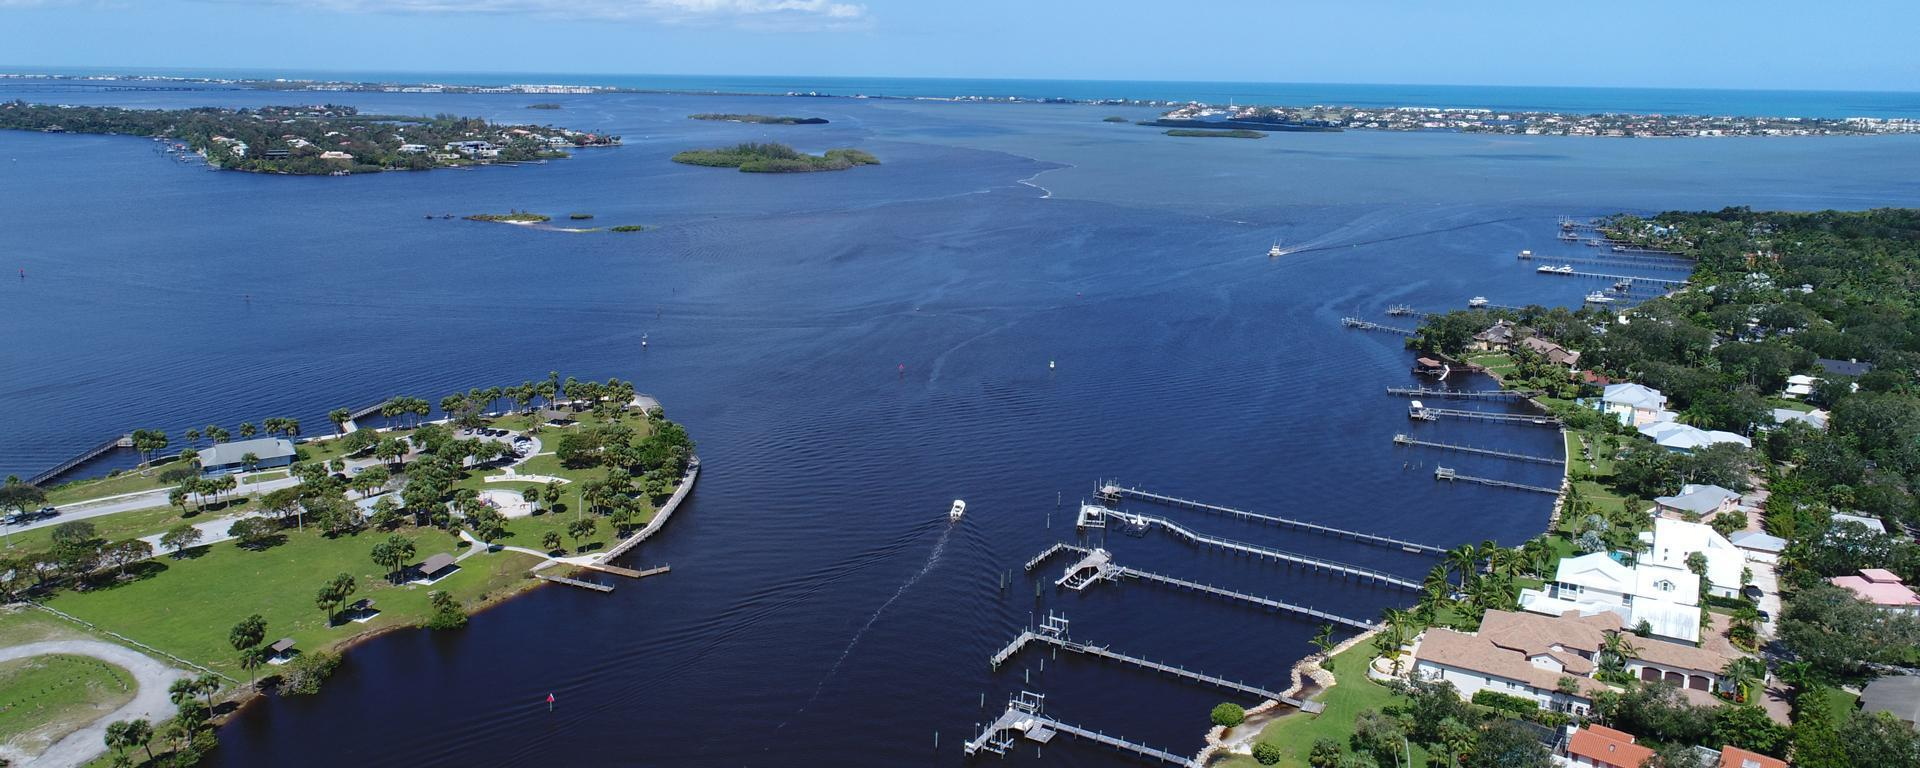 An aerial image above the Manatee Pocket